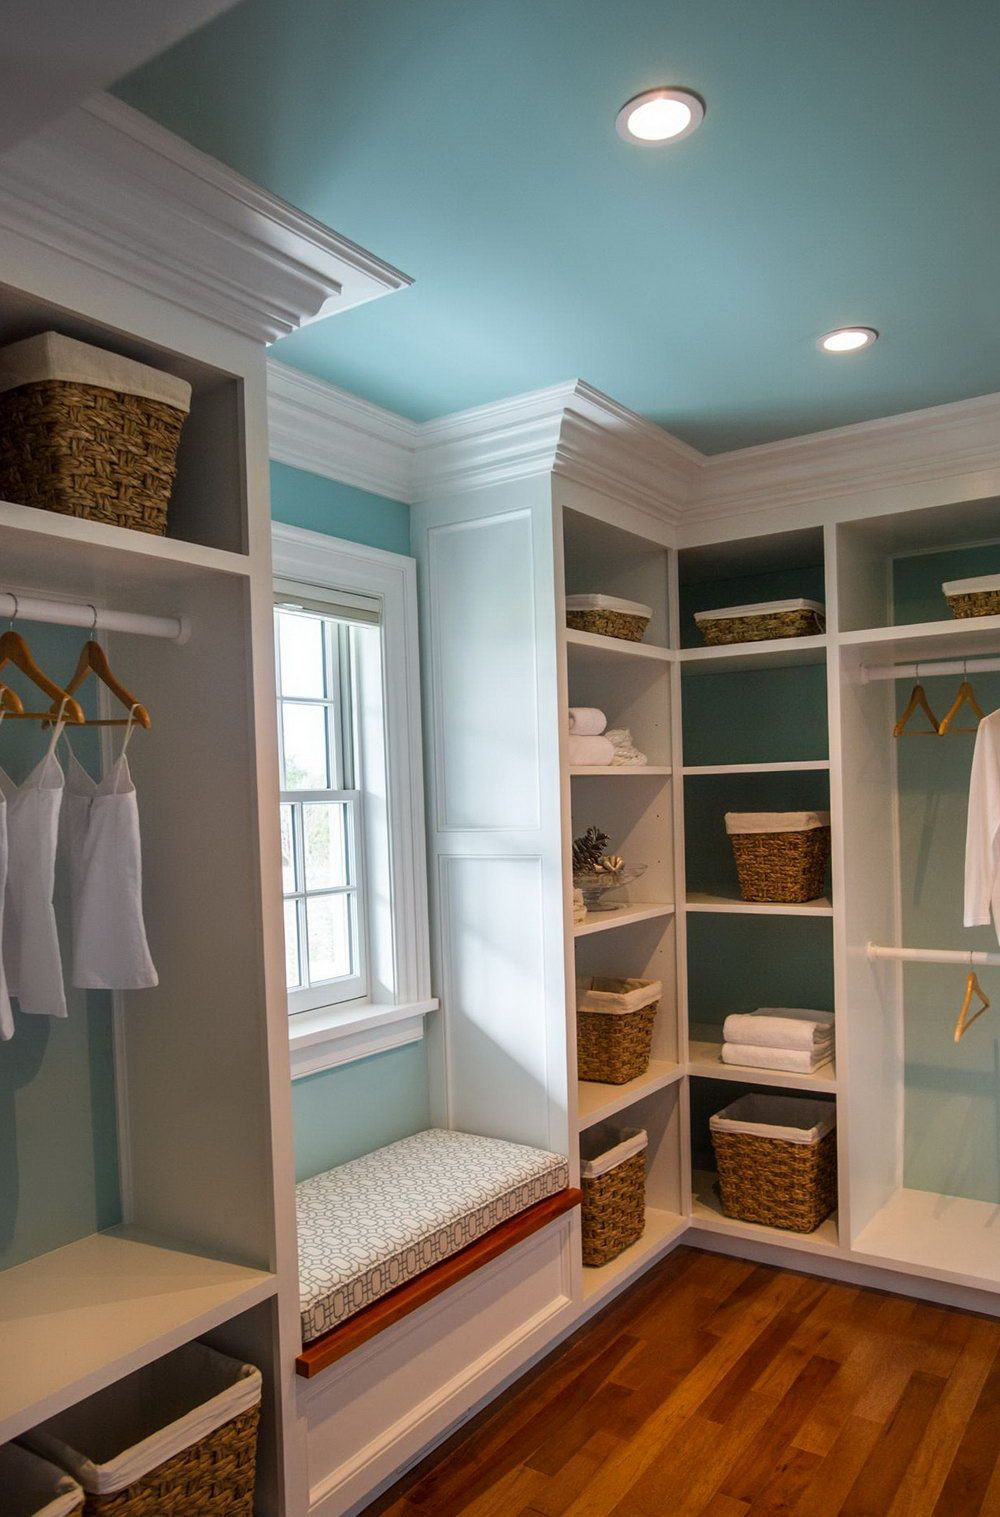 Small Walk In Closet Ideas, Ikea, Diy, Spaces, Pictures   Welcome To Our  Gallery Of Leading Deluxe Stroll In Storage Room Suggestions.